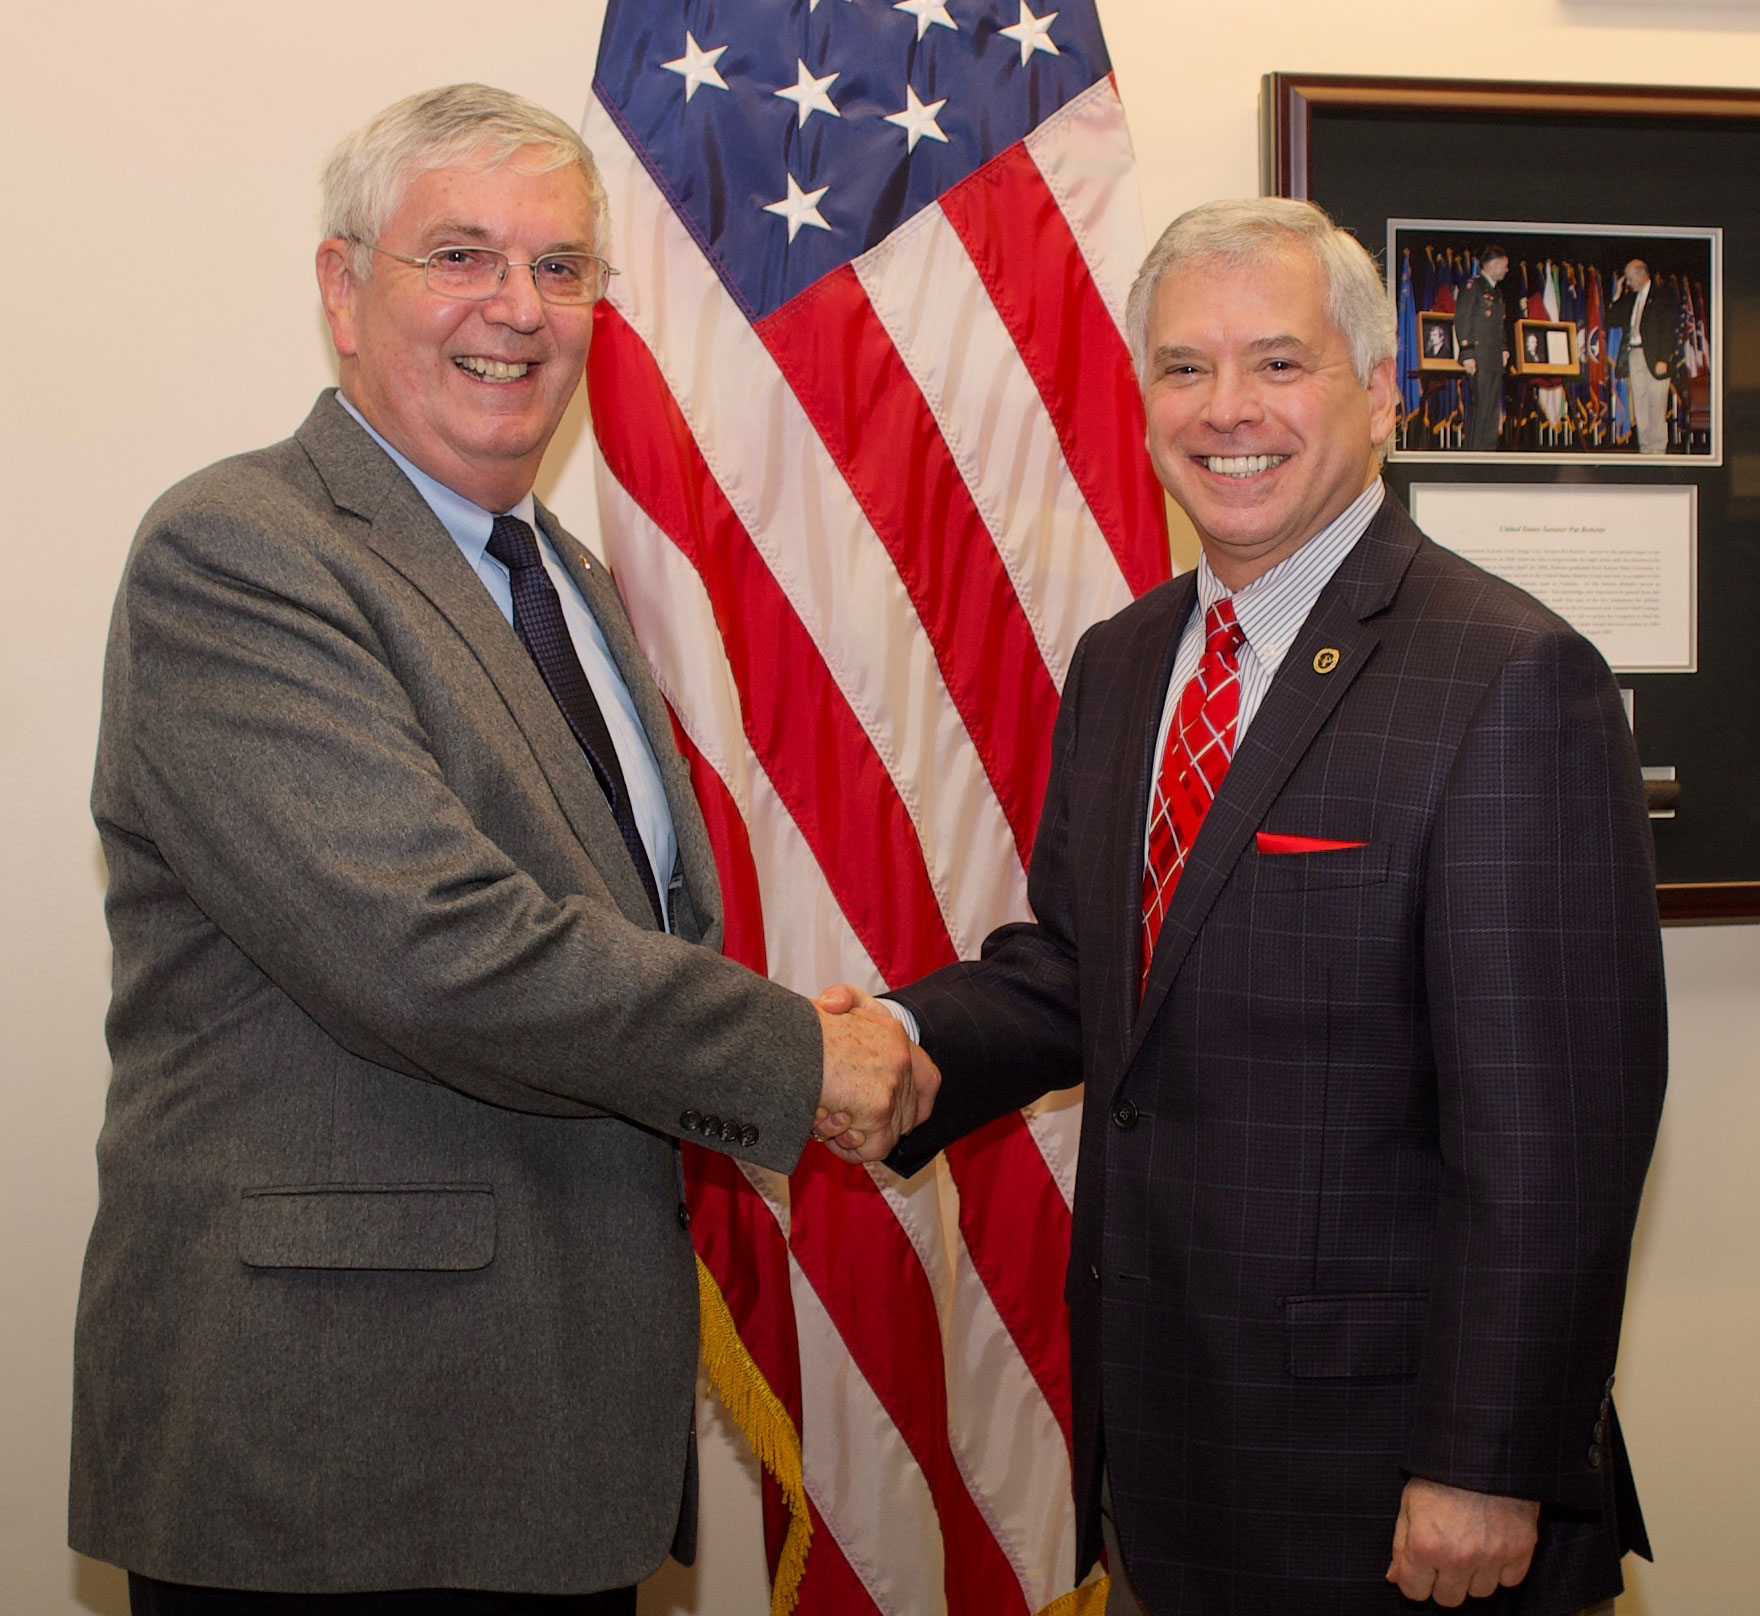 Colonel Roderick M. Cox. Cox, U.S. Army, retired (right) and then-outgoing CGSC Foundation CEO Colonel Doug Tystad, U.S. Army, retired (left) shake hands as Cox is prepares to take over as President and CEO of the CGSC Foundation in December 2018.